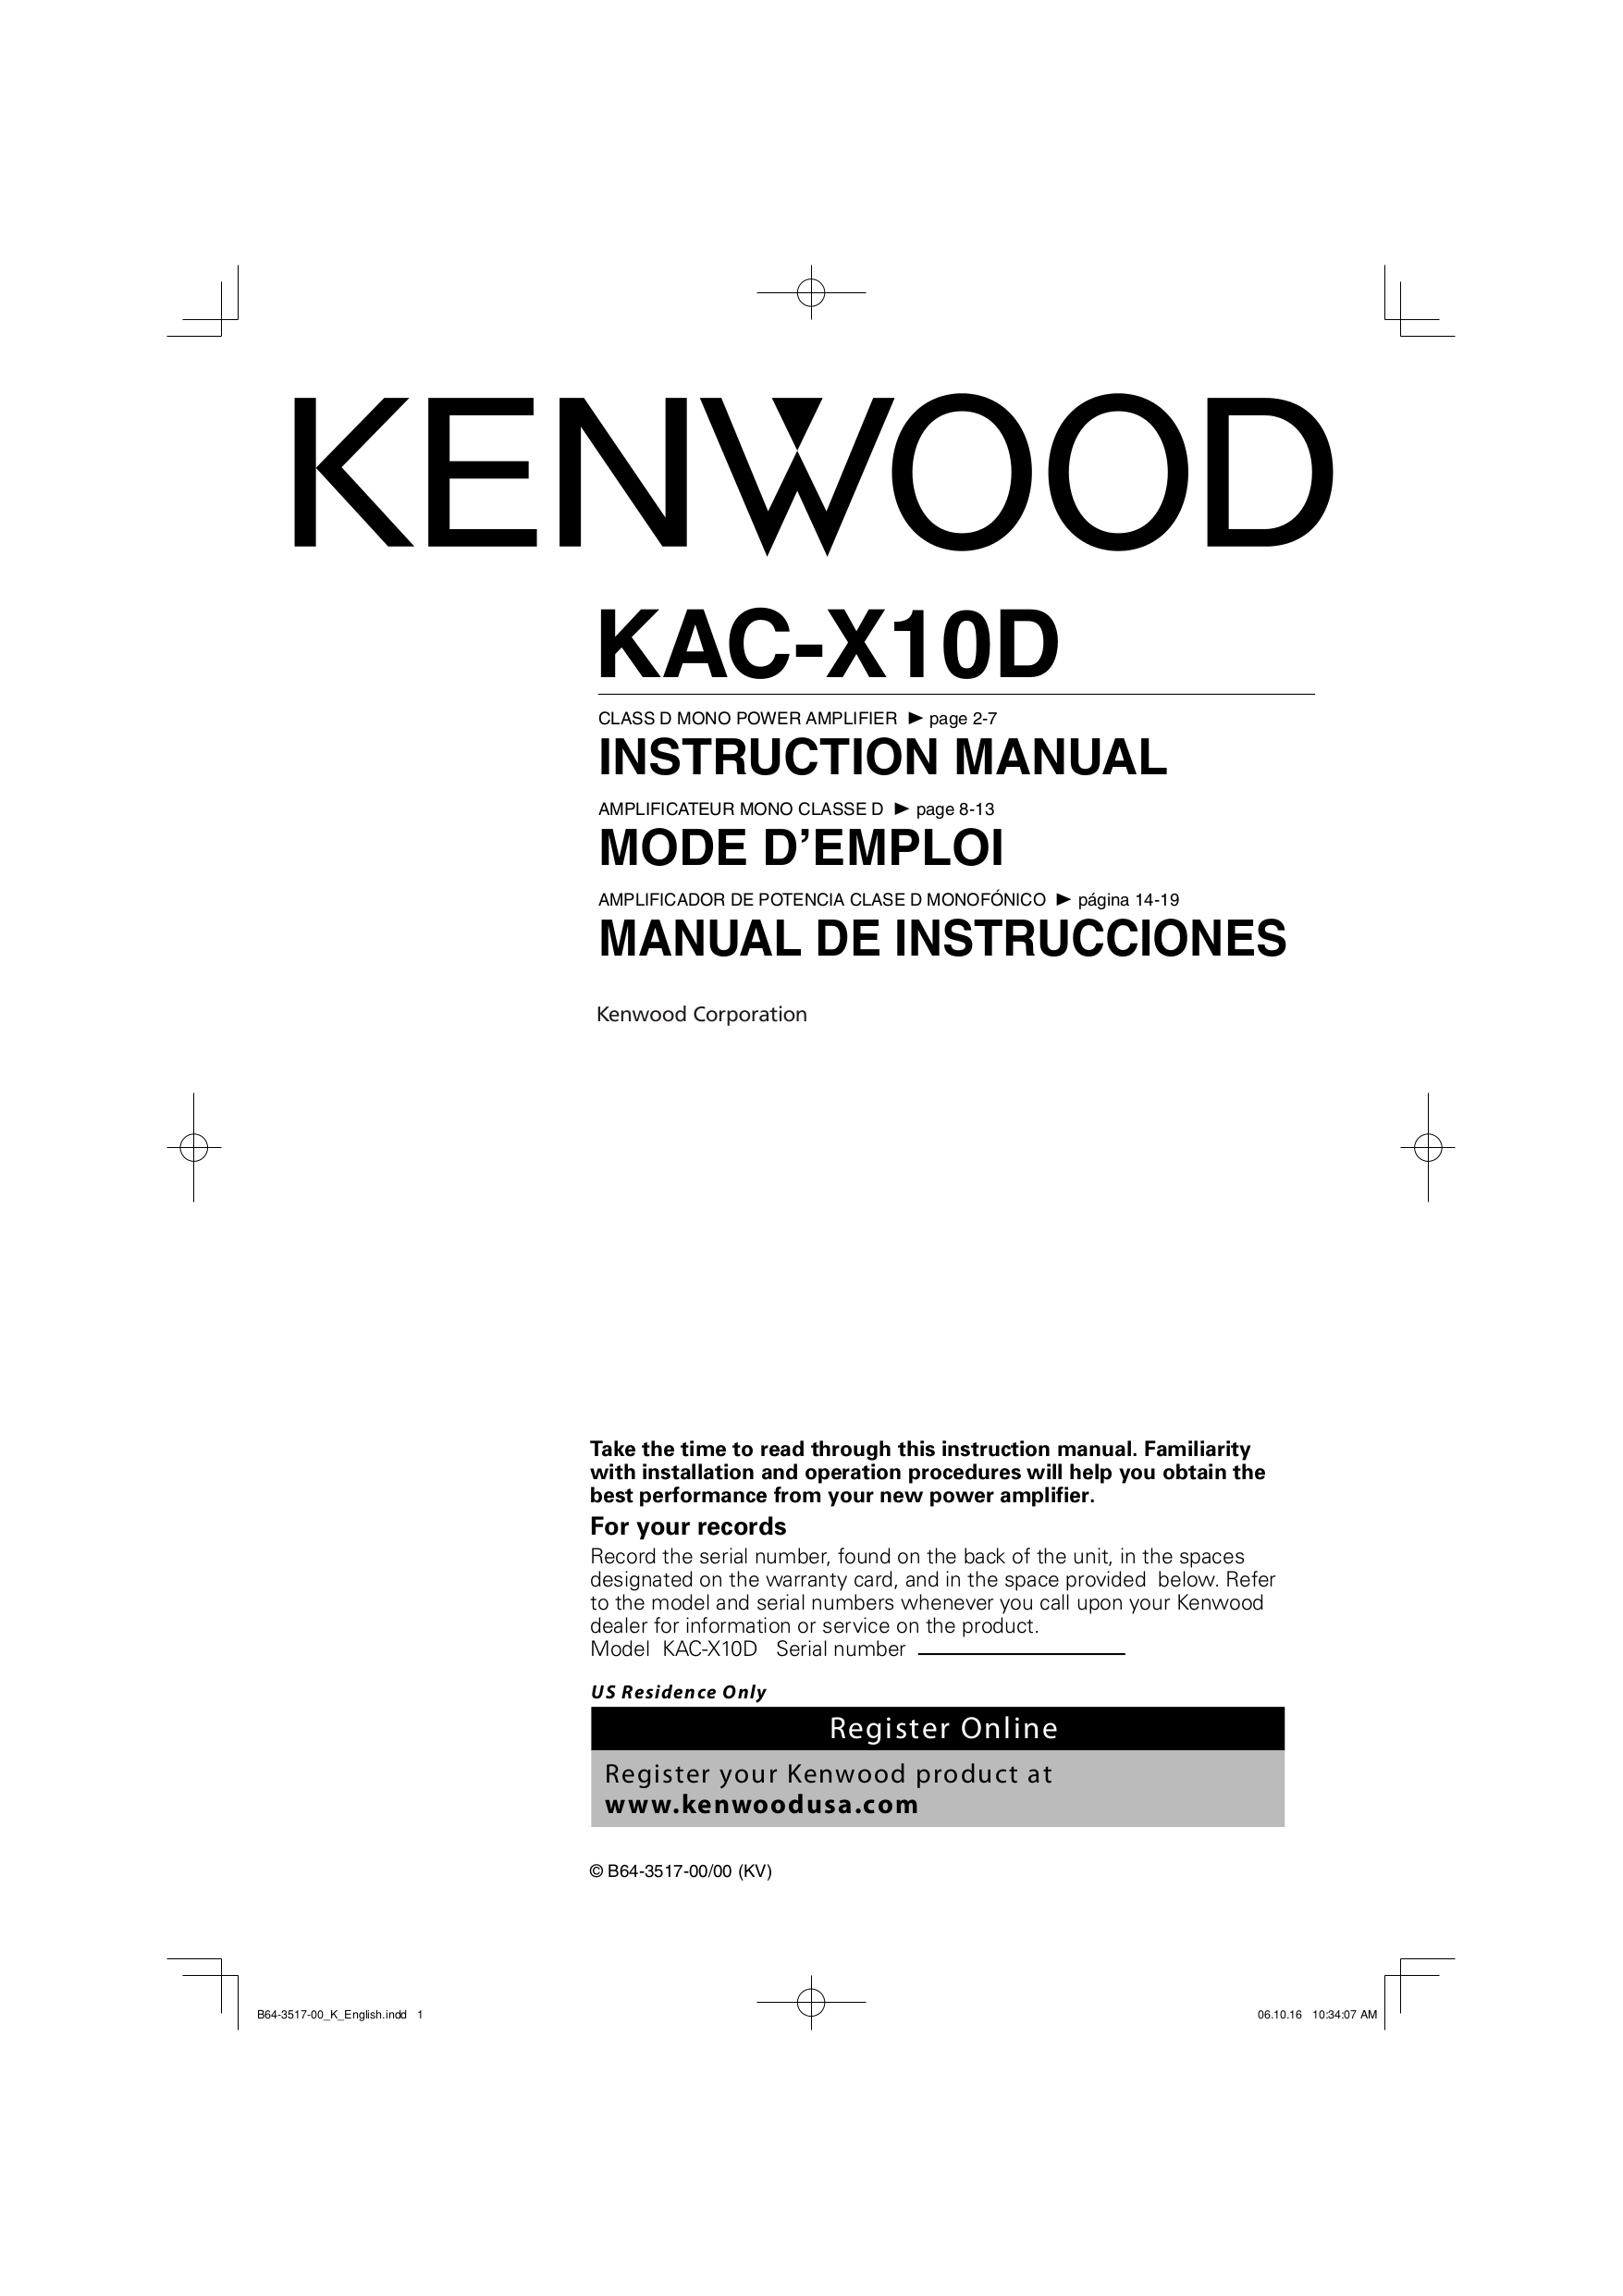 Power Car Amplifier Wiring Diagram Pdf Library Automotive Diagrams For Kenwood Kac X10d Manual